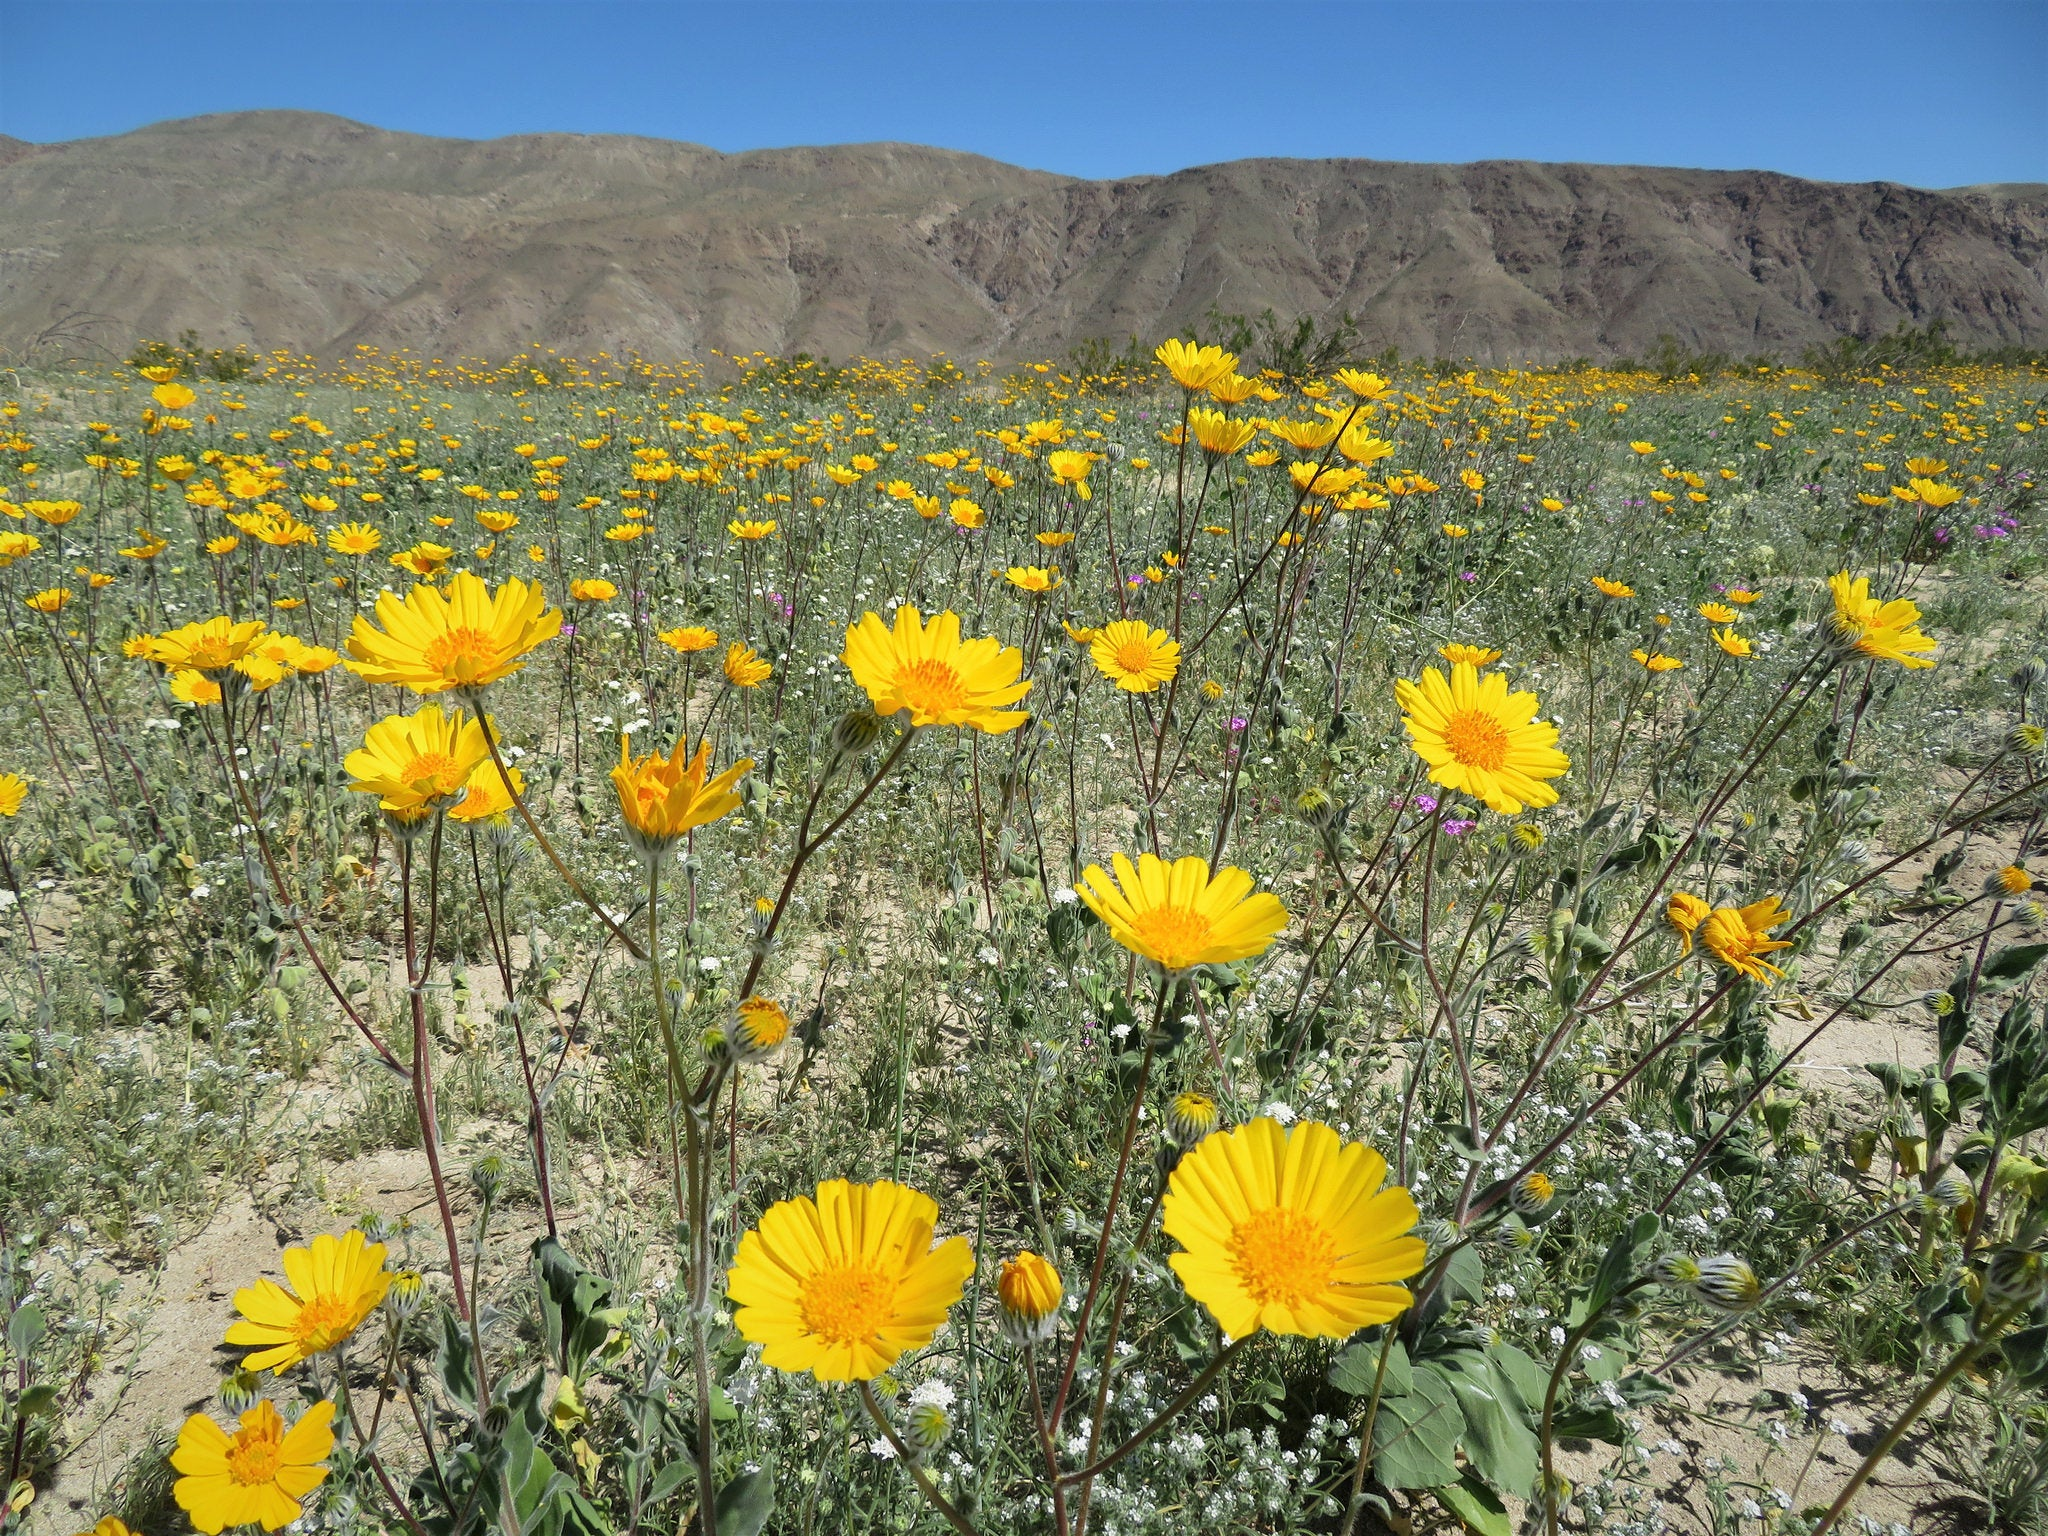 Don't go to Death Valley looking for a 'Super Bloom'